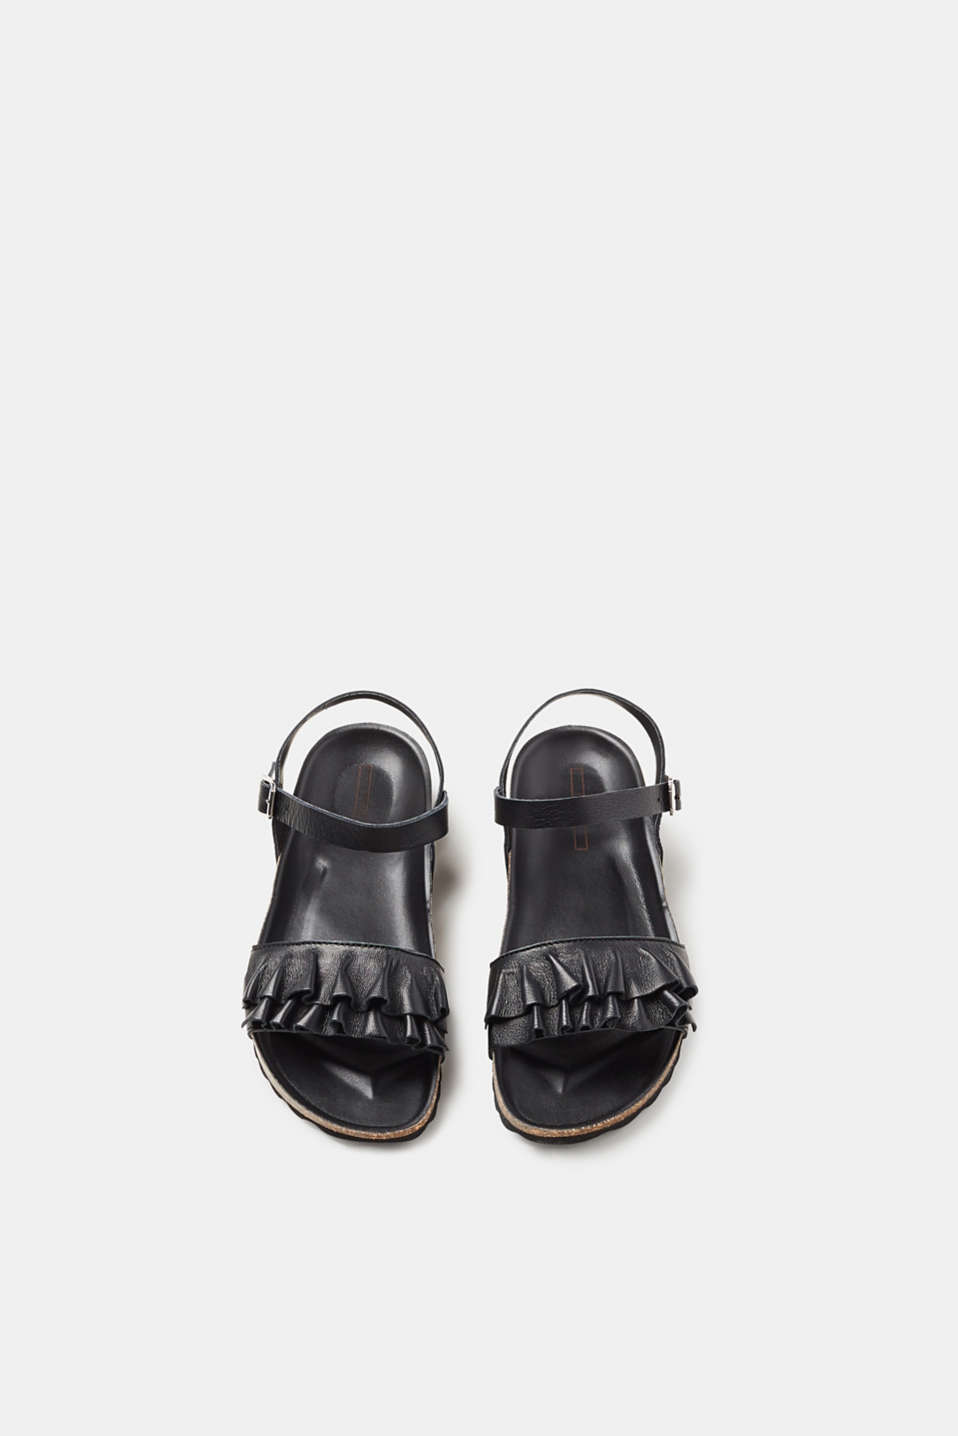 Leather sandals with a footbed and feminine frills